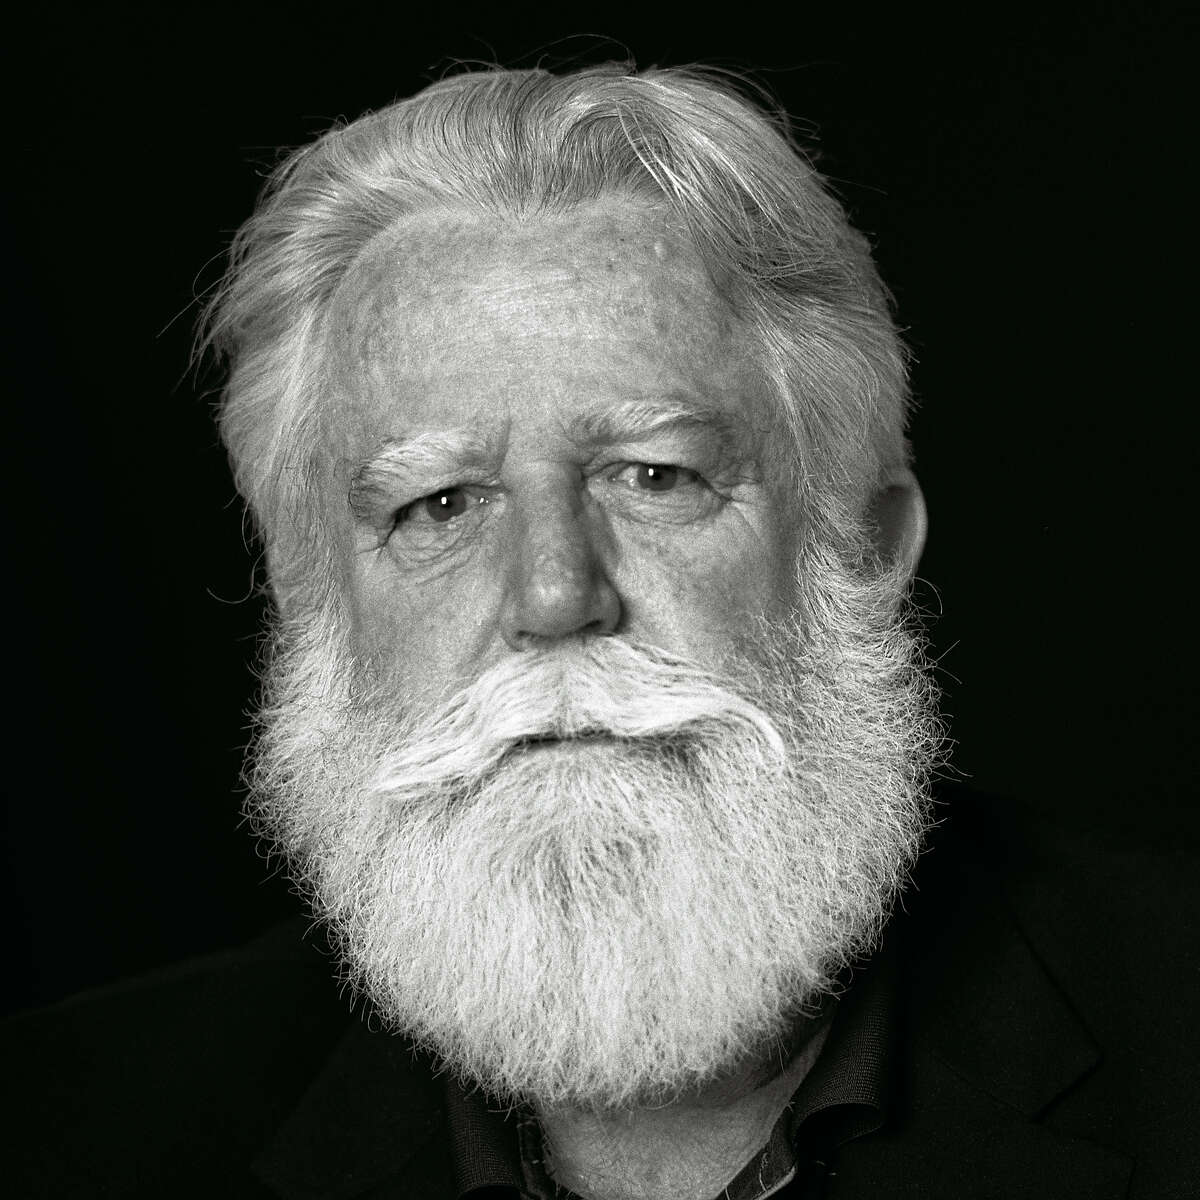 James Turrell, shown in 2013, was born in Los Angeles in 1943. He studied psychology and math as an undergraduate studies at Pomona College before taking up art in graduate school.